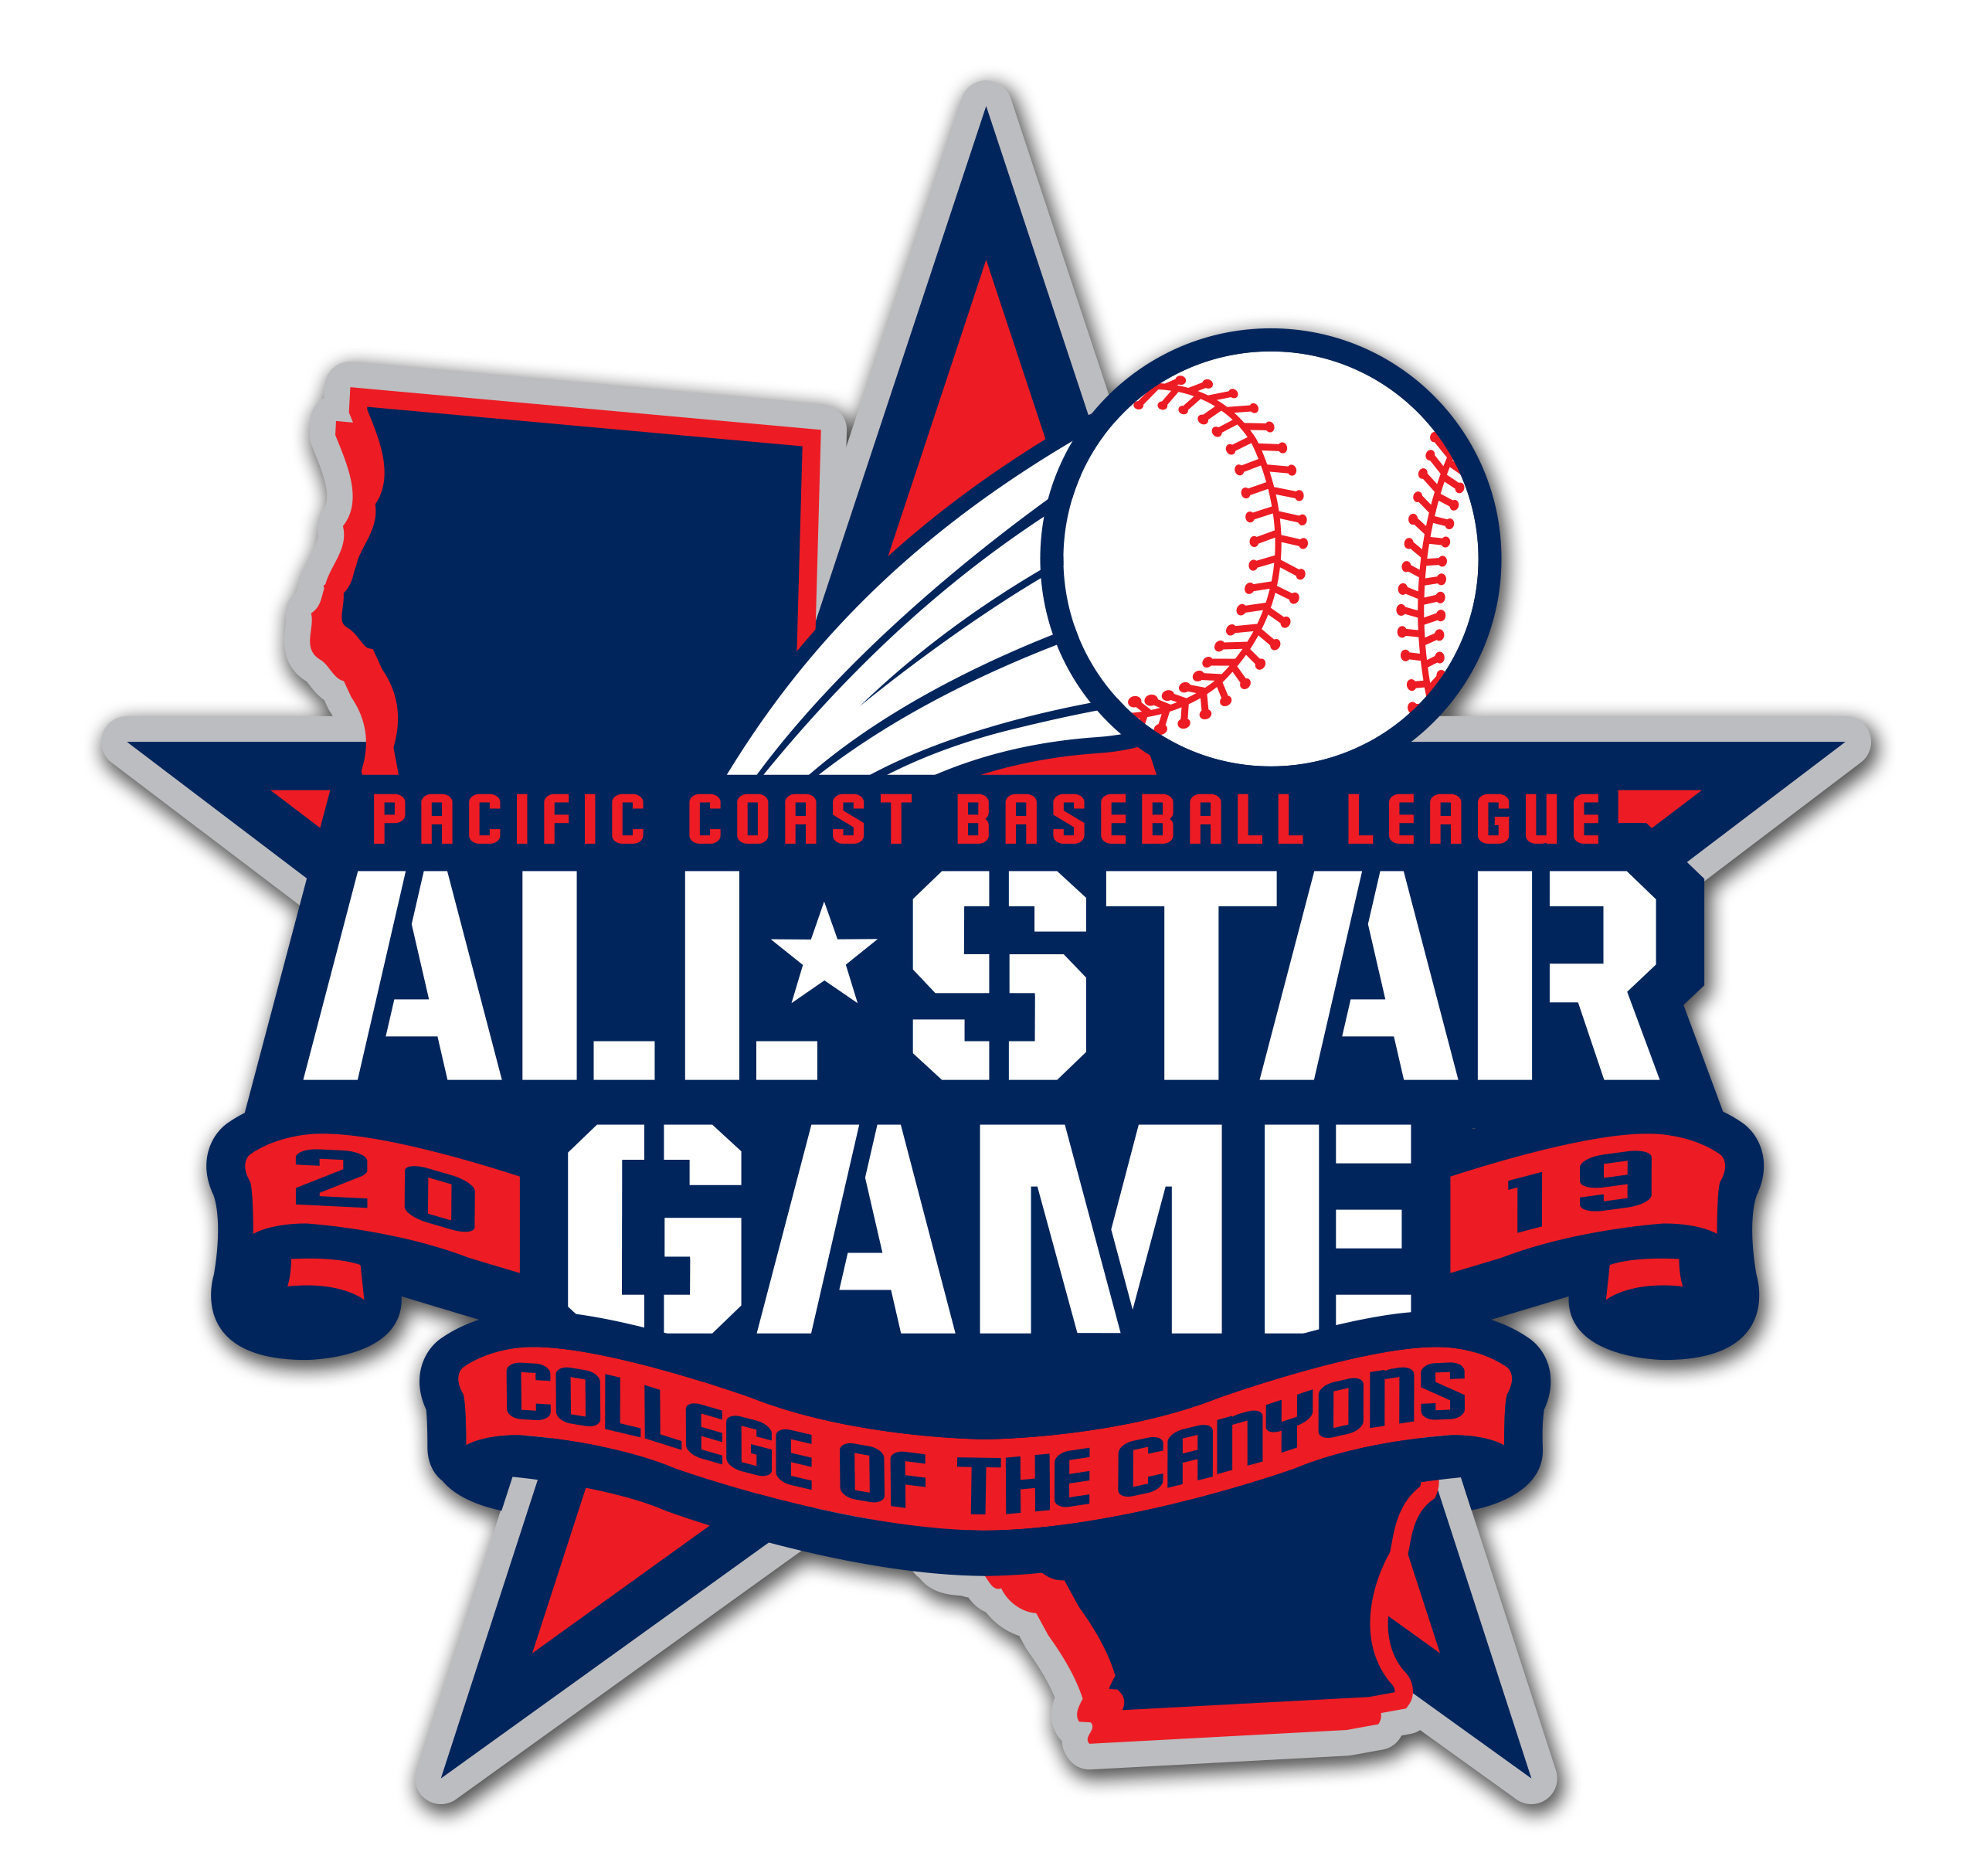 2019 All Star Game